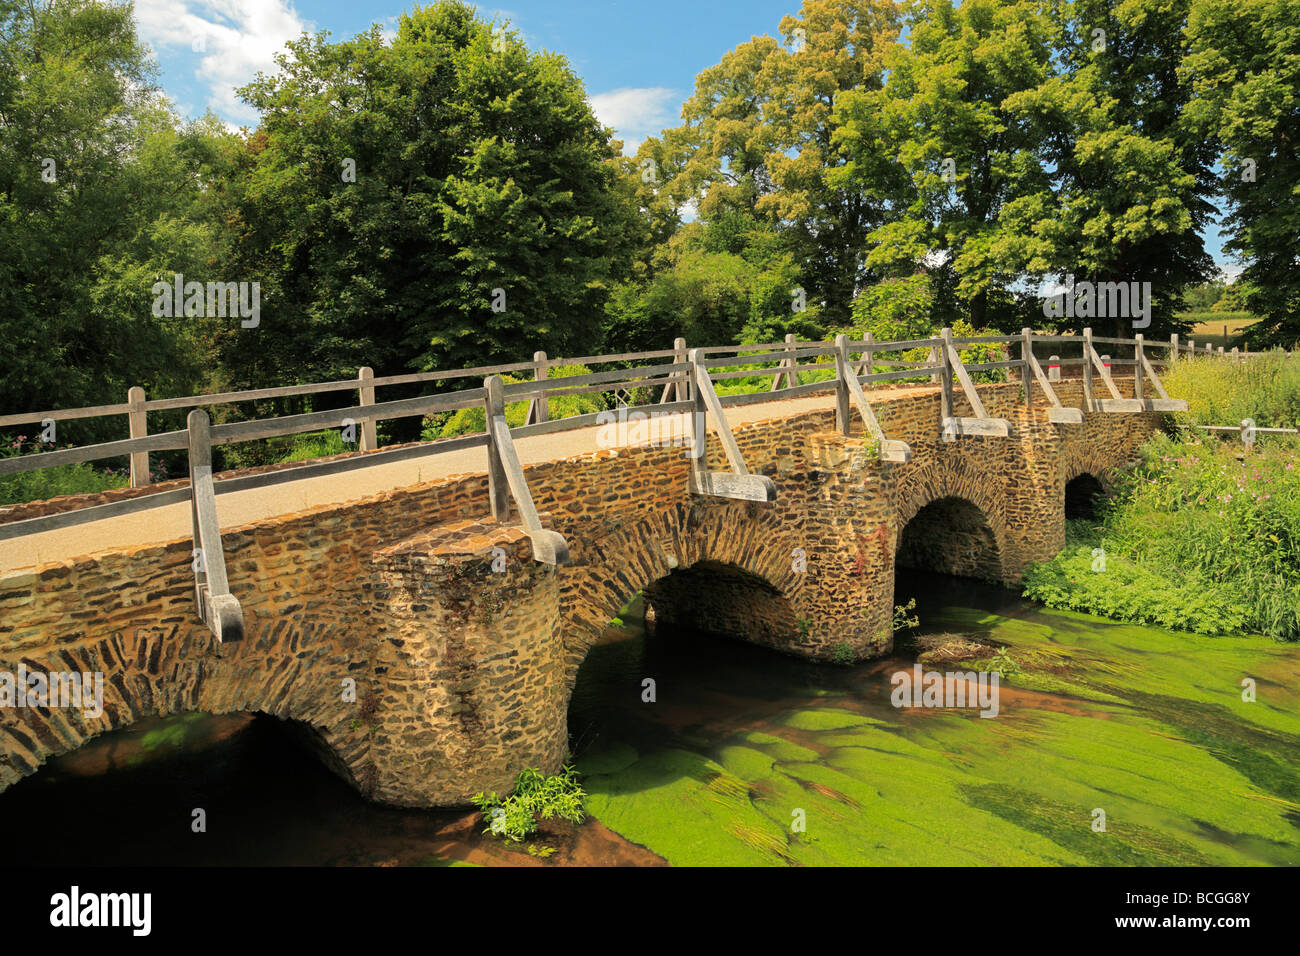 Tilford West Bridge. Surrey, England, UK. - Stock Image